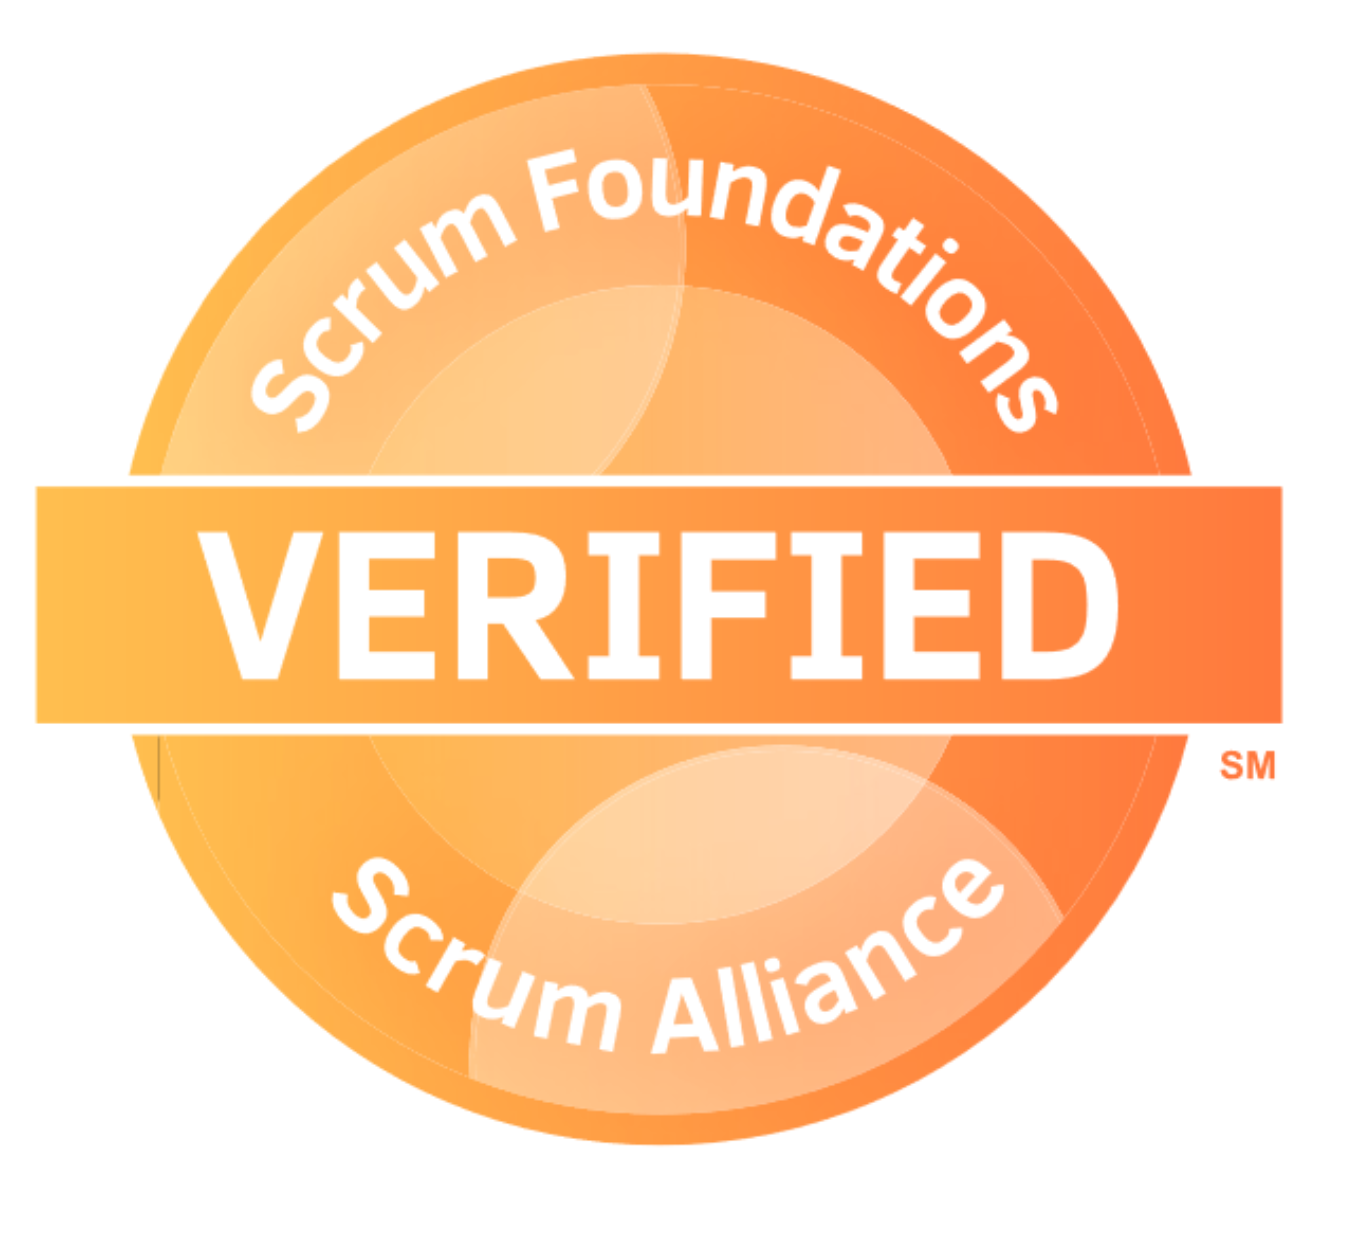 Free Scrum Foundations Course